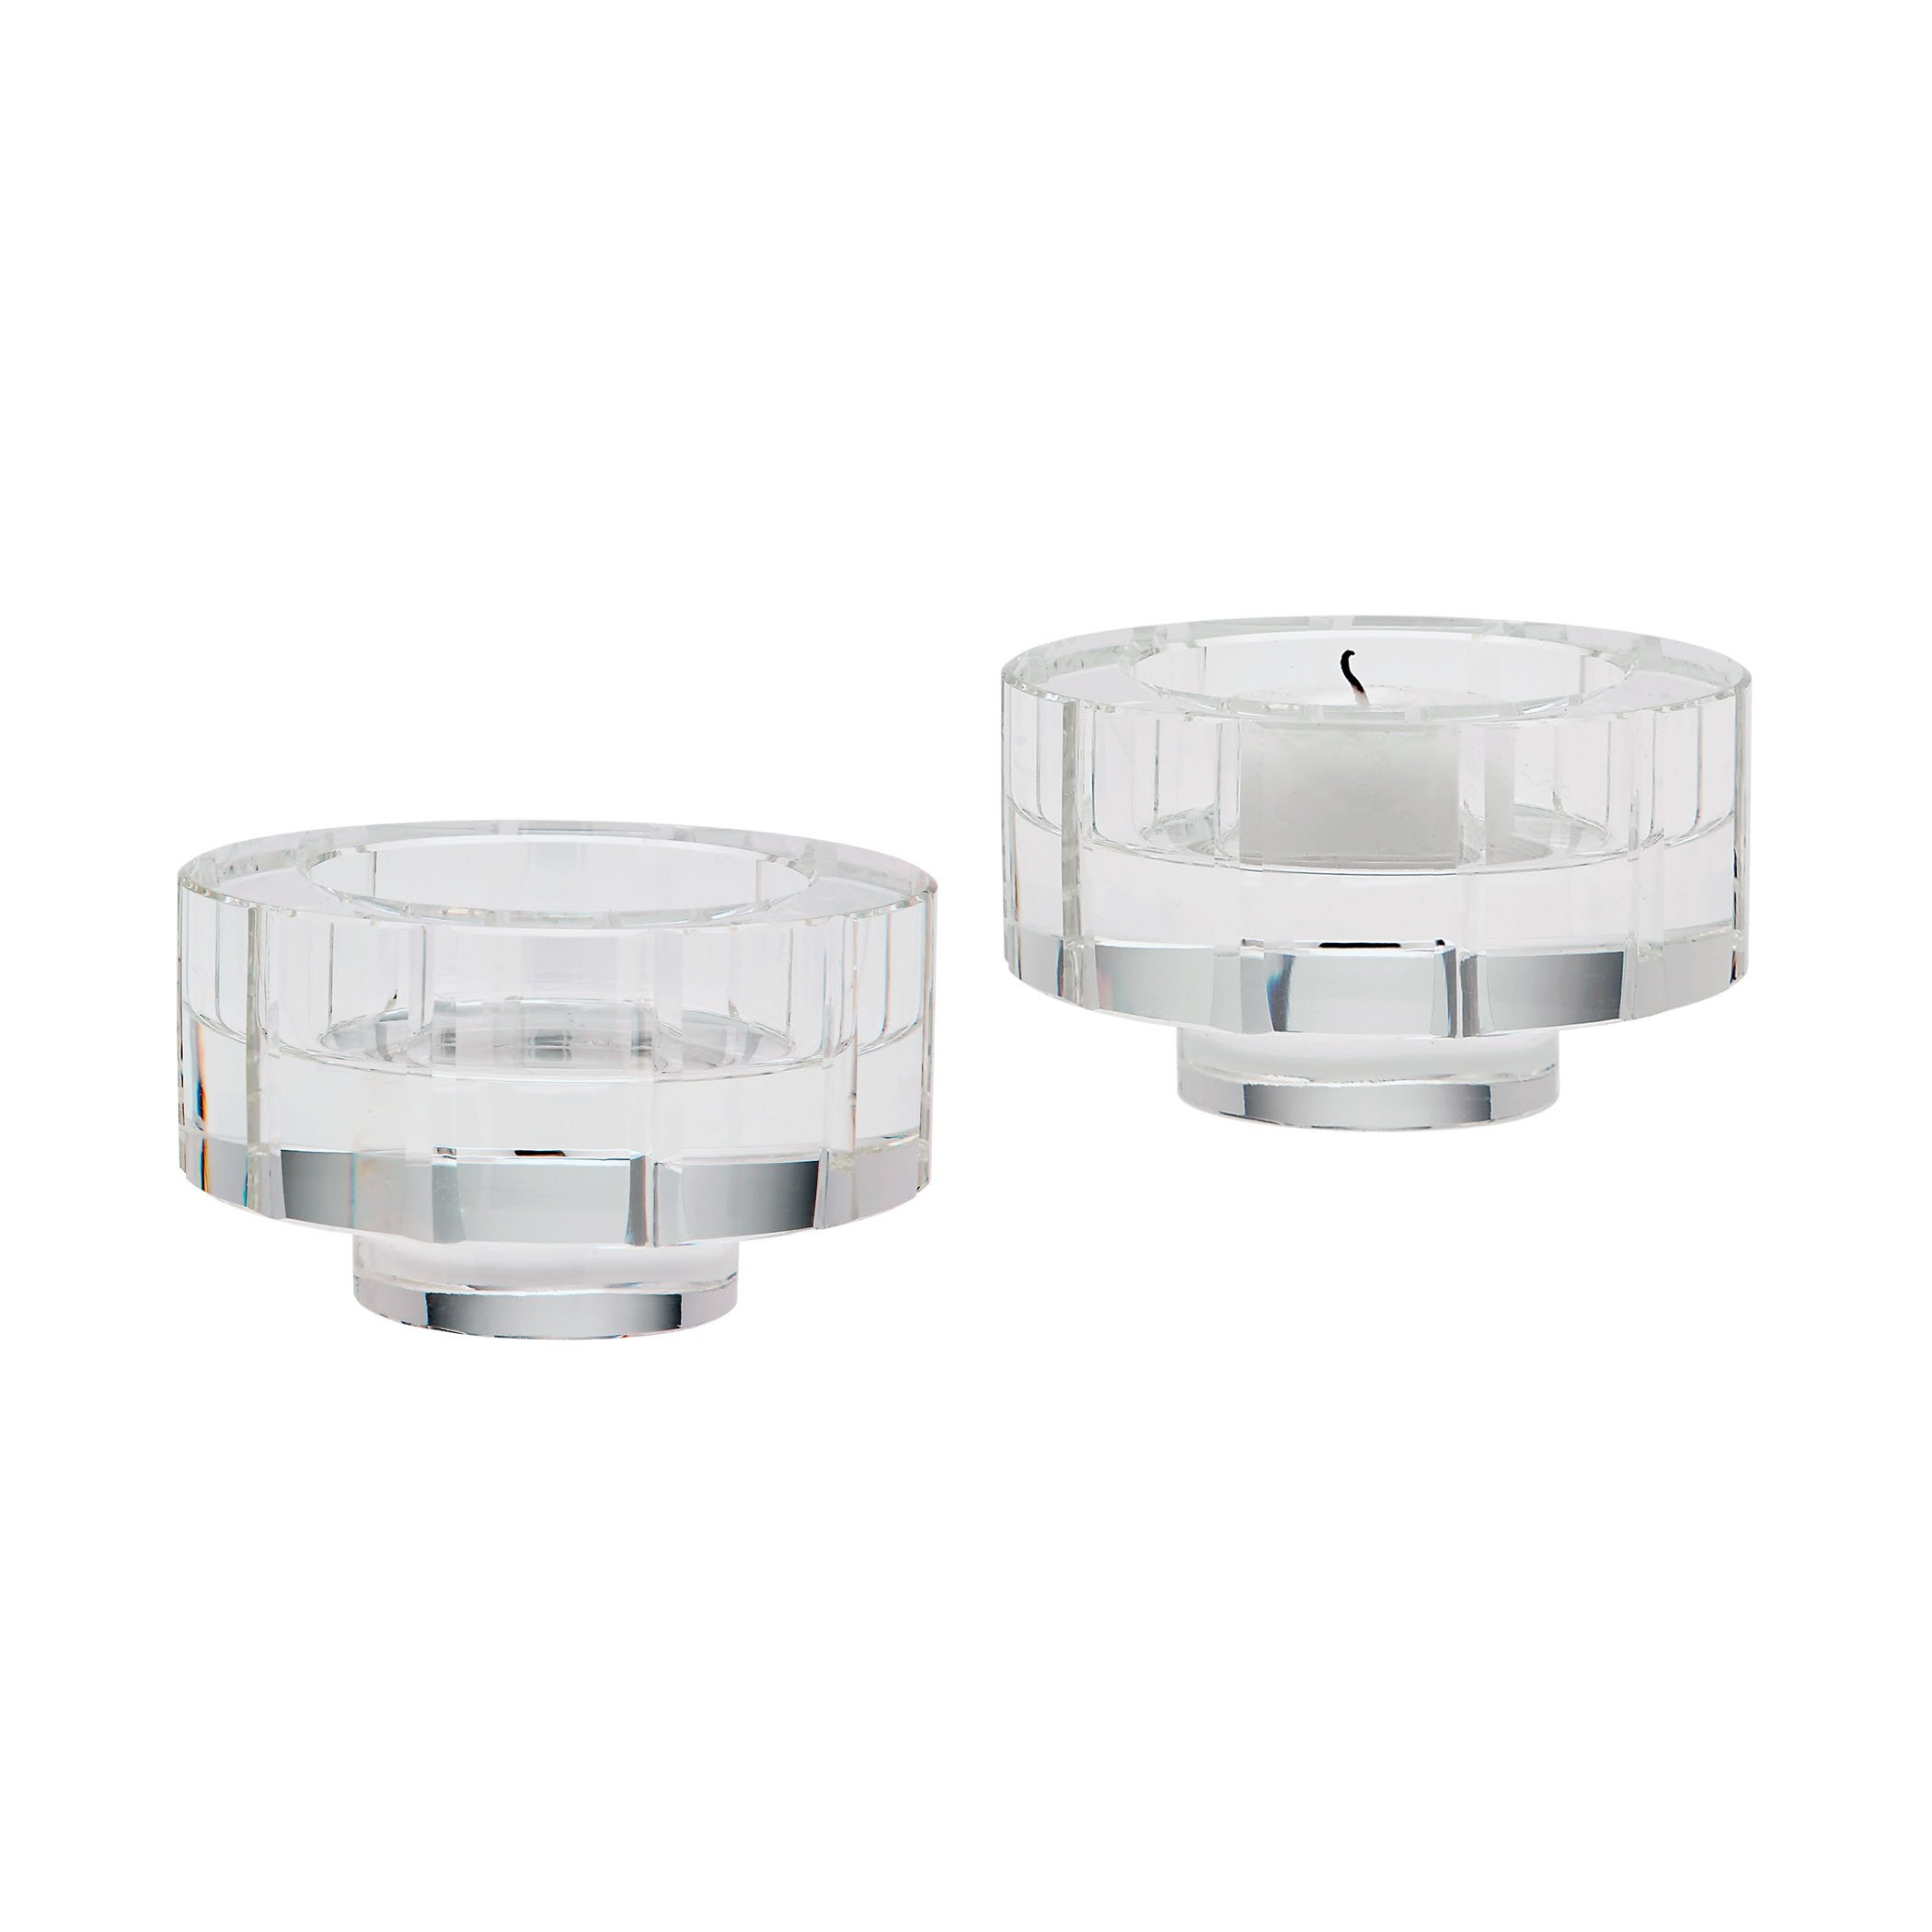 Round Windowpane Crystal Candleholders - Small. Set Of 2